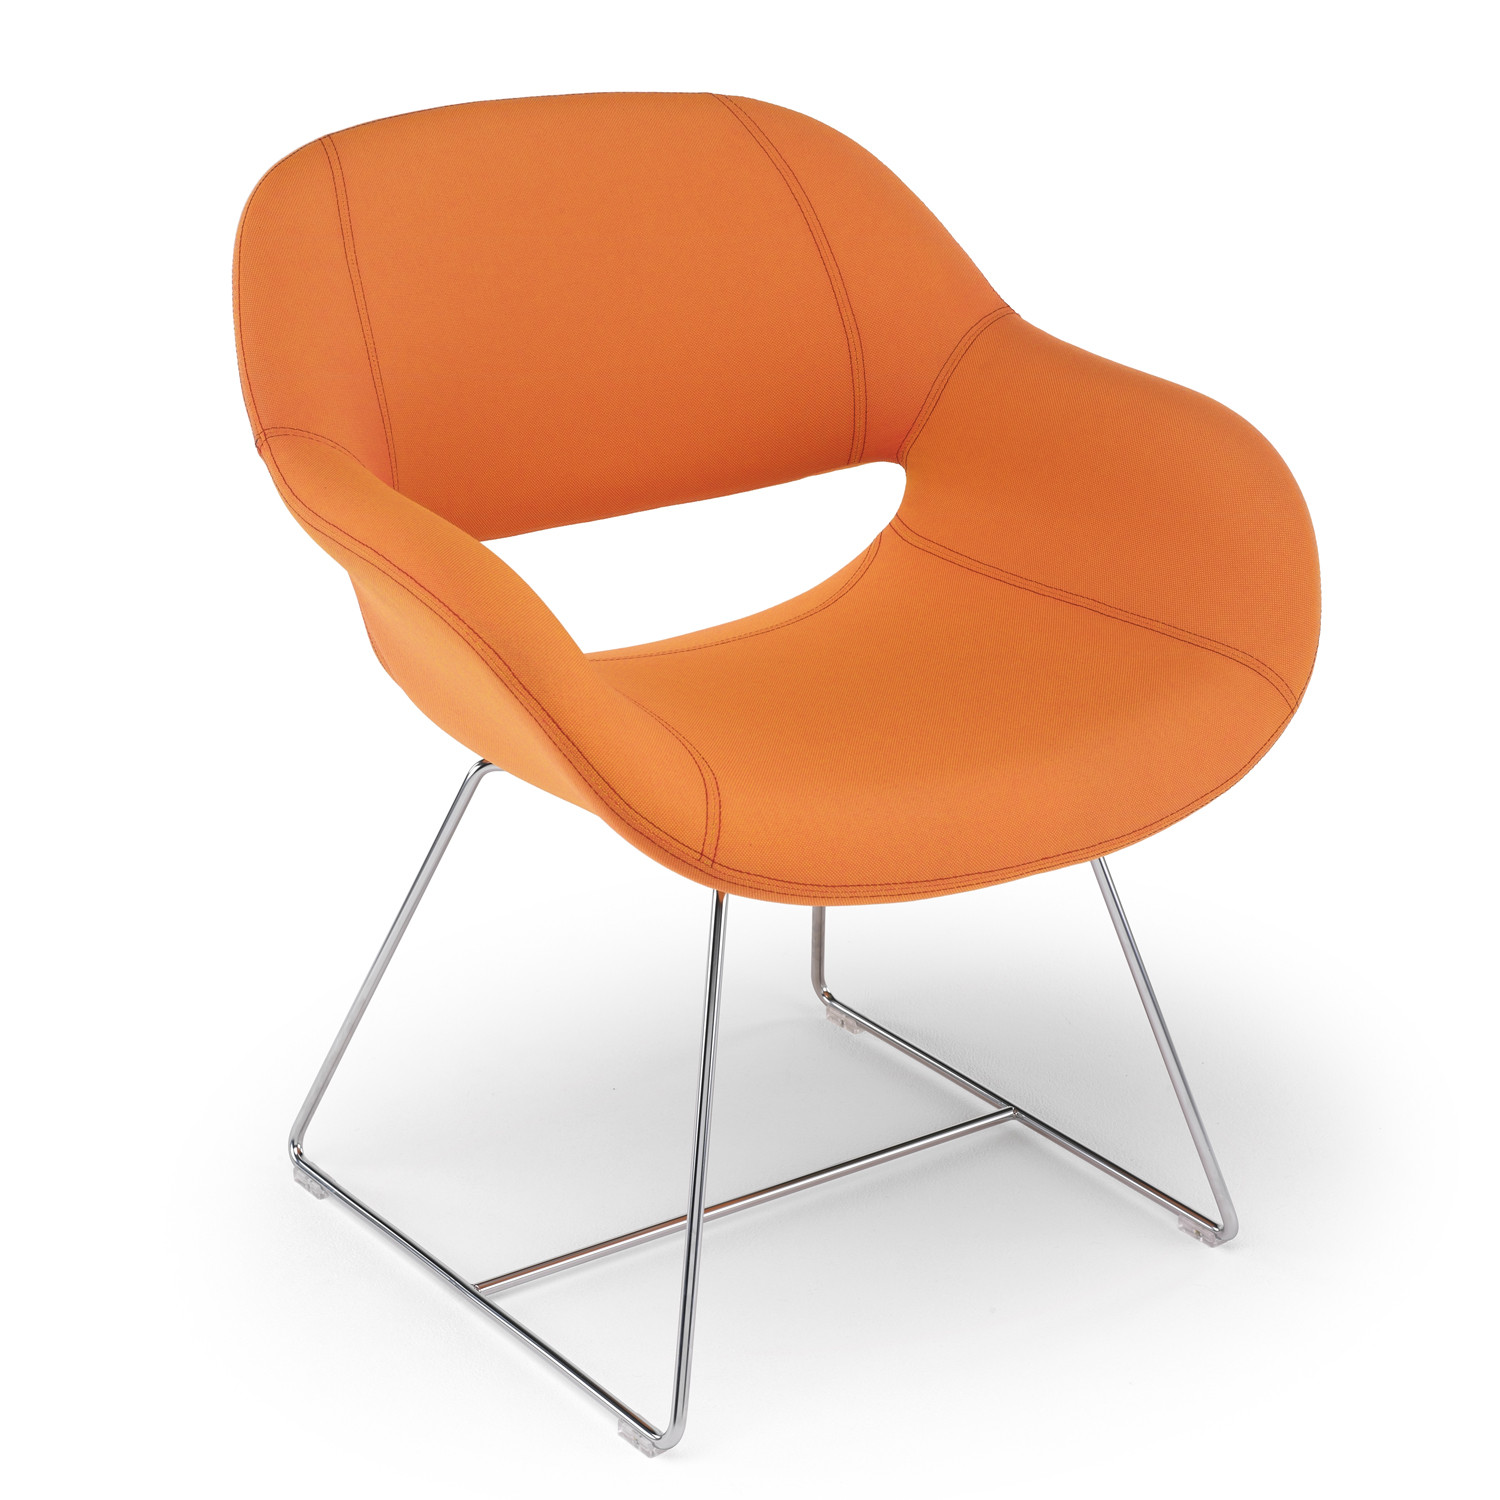 8200 Volpe Armchair with sled-base